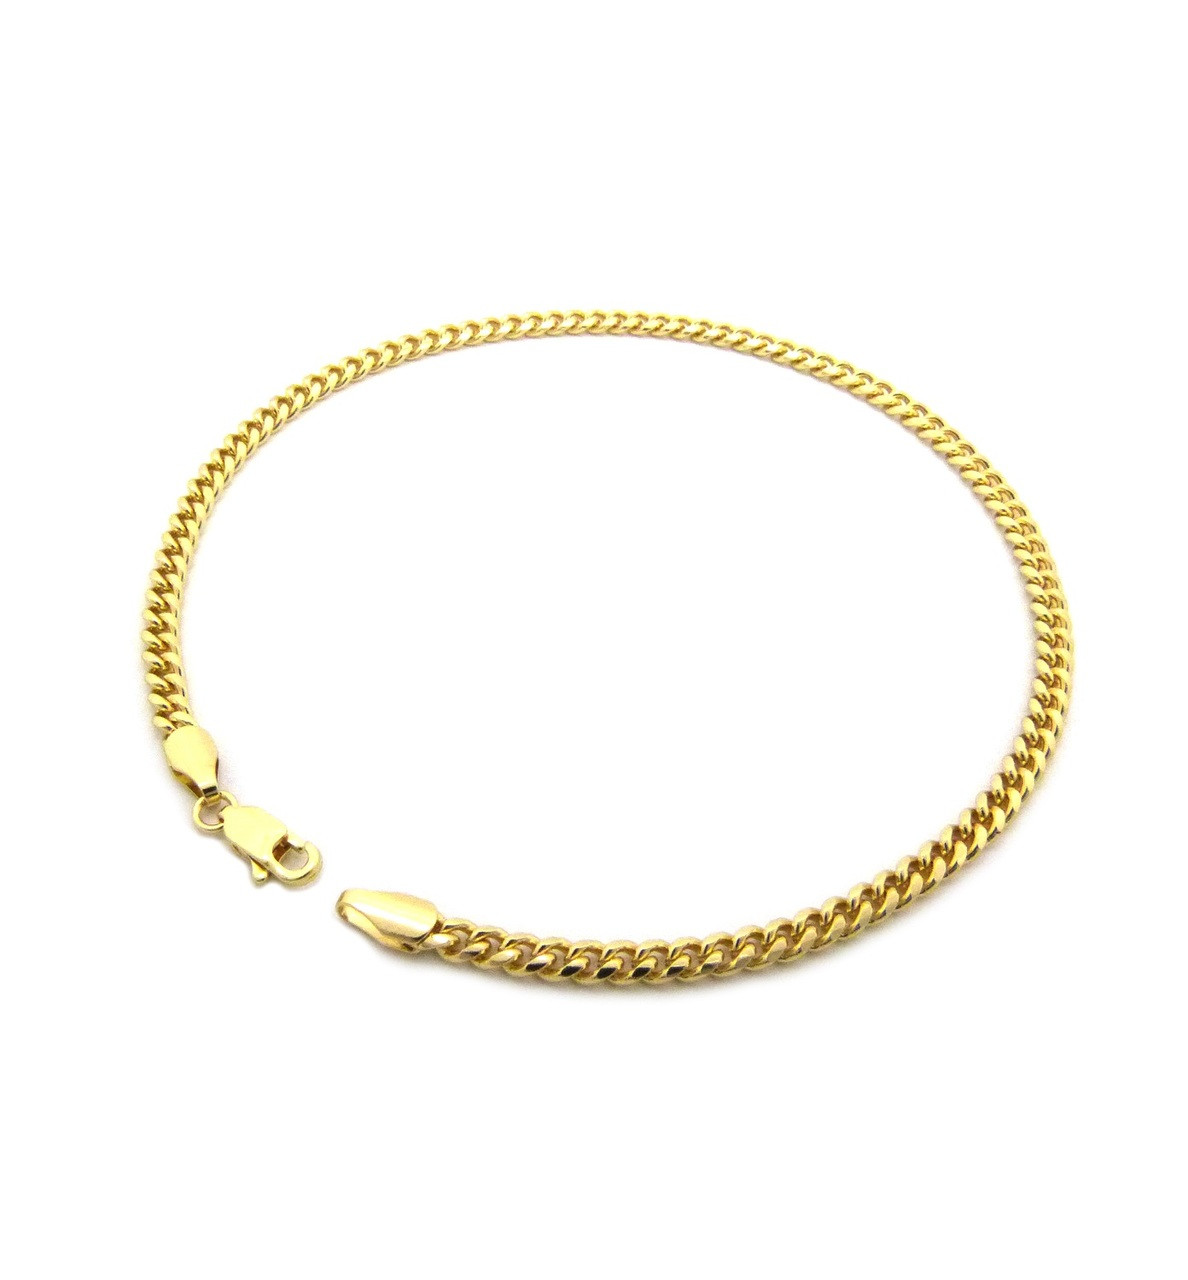 anklet jewelry yellow and id j an is at in l elephant charm bracelets sale for bracelet anklets this charms gold ankle features crafted